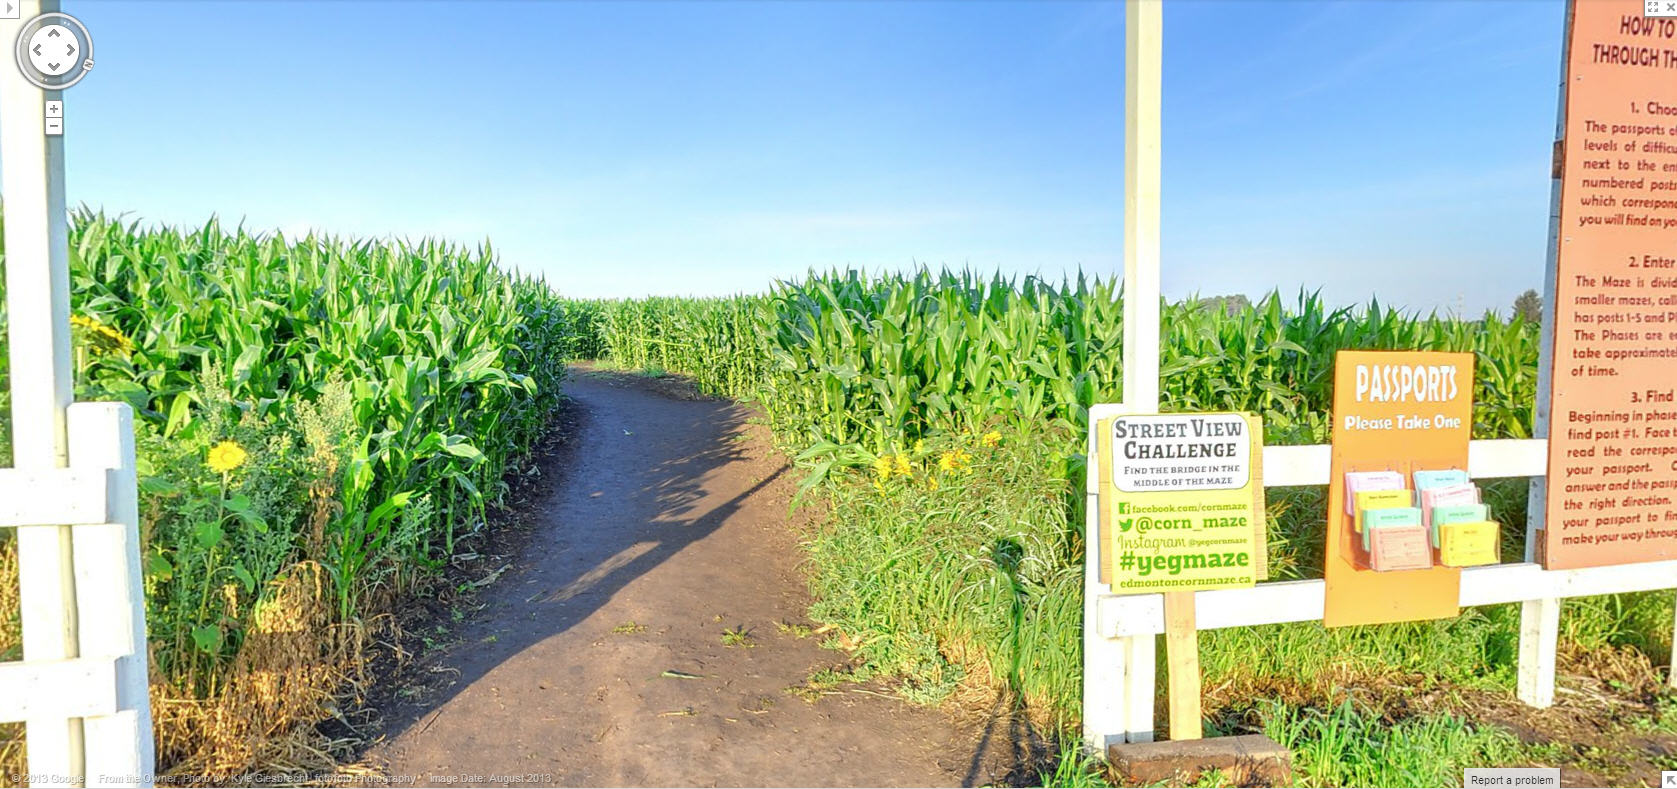 Solve a Corn Maze via Google Street View!